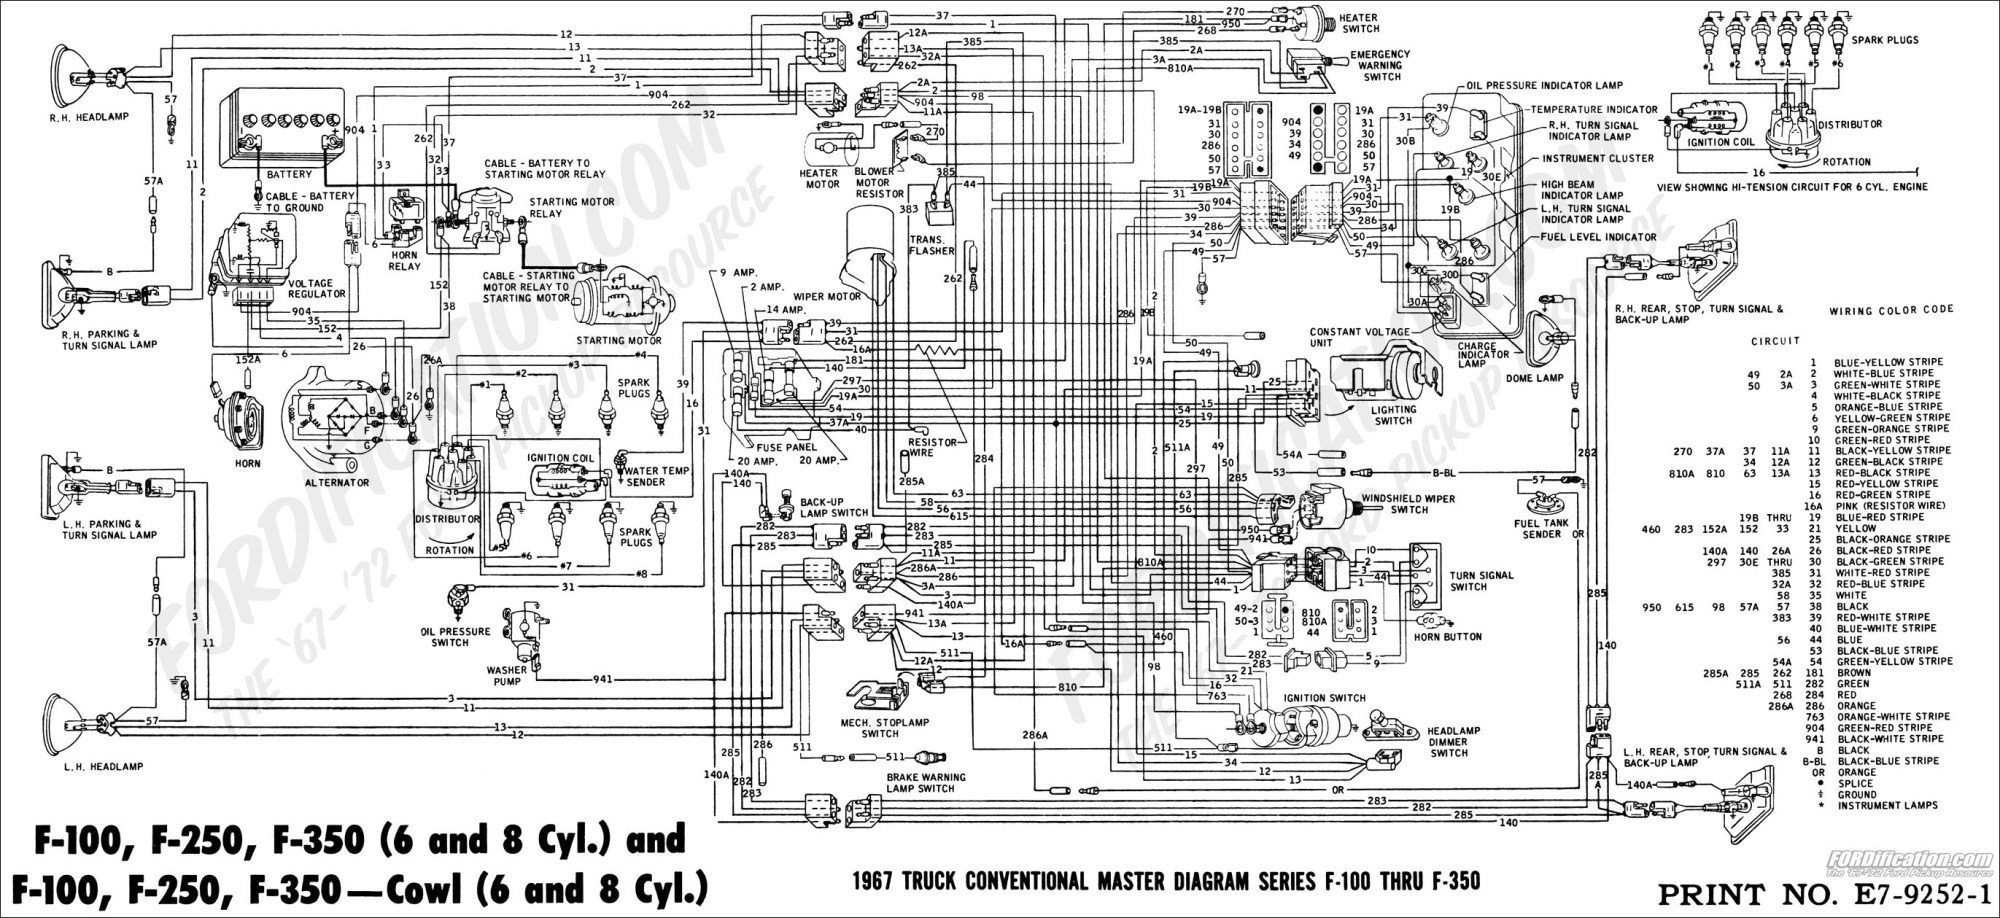 hight resolution of 1995 f150 wiring diagram wiring diagram mega 1995 f150 stereo wiring diagram 1995 f150 wiring diagram